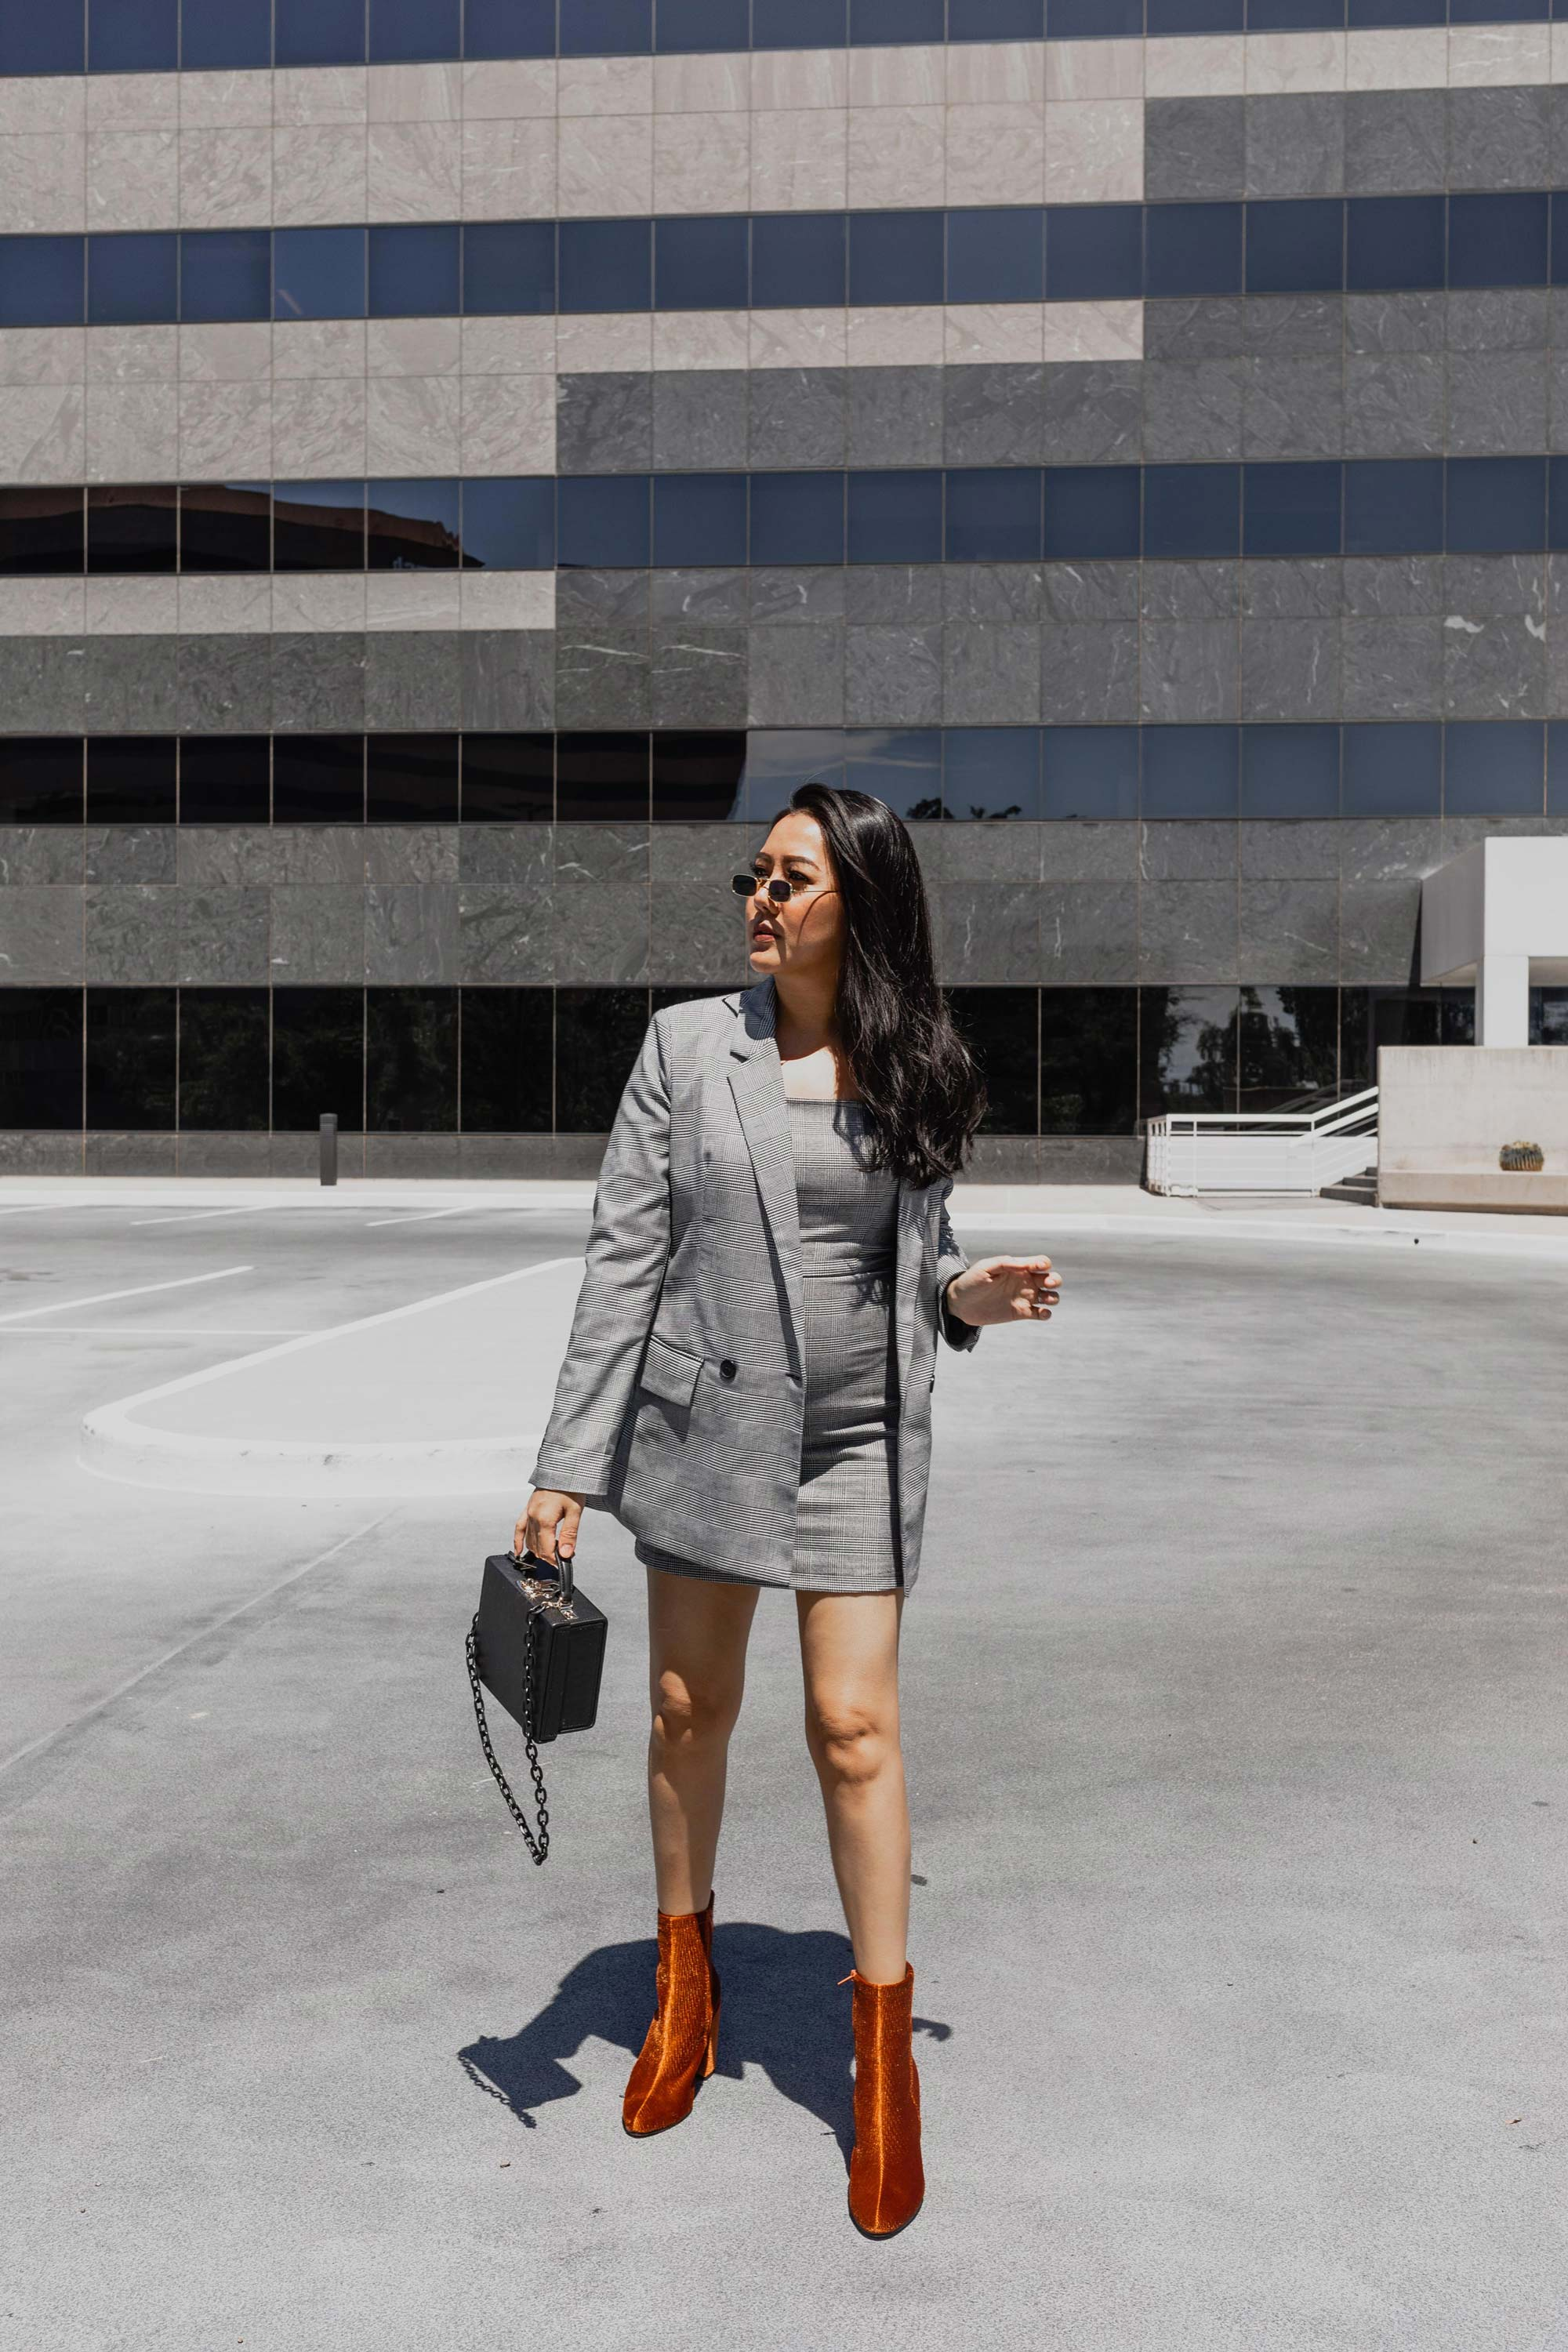 Fall Outfit Idea Plaid Blazer Dress velvet corduroy rust ankle boots Molly Larsen Allaboutgoodvibes.com Instagram @thevibescloset Fashion Style blogger